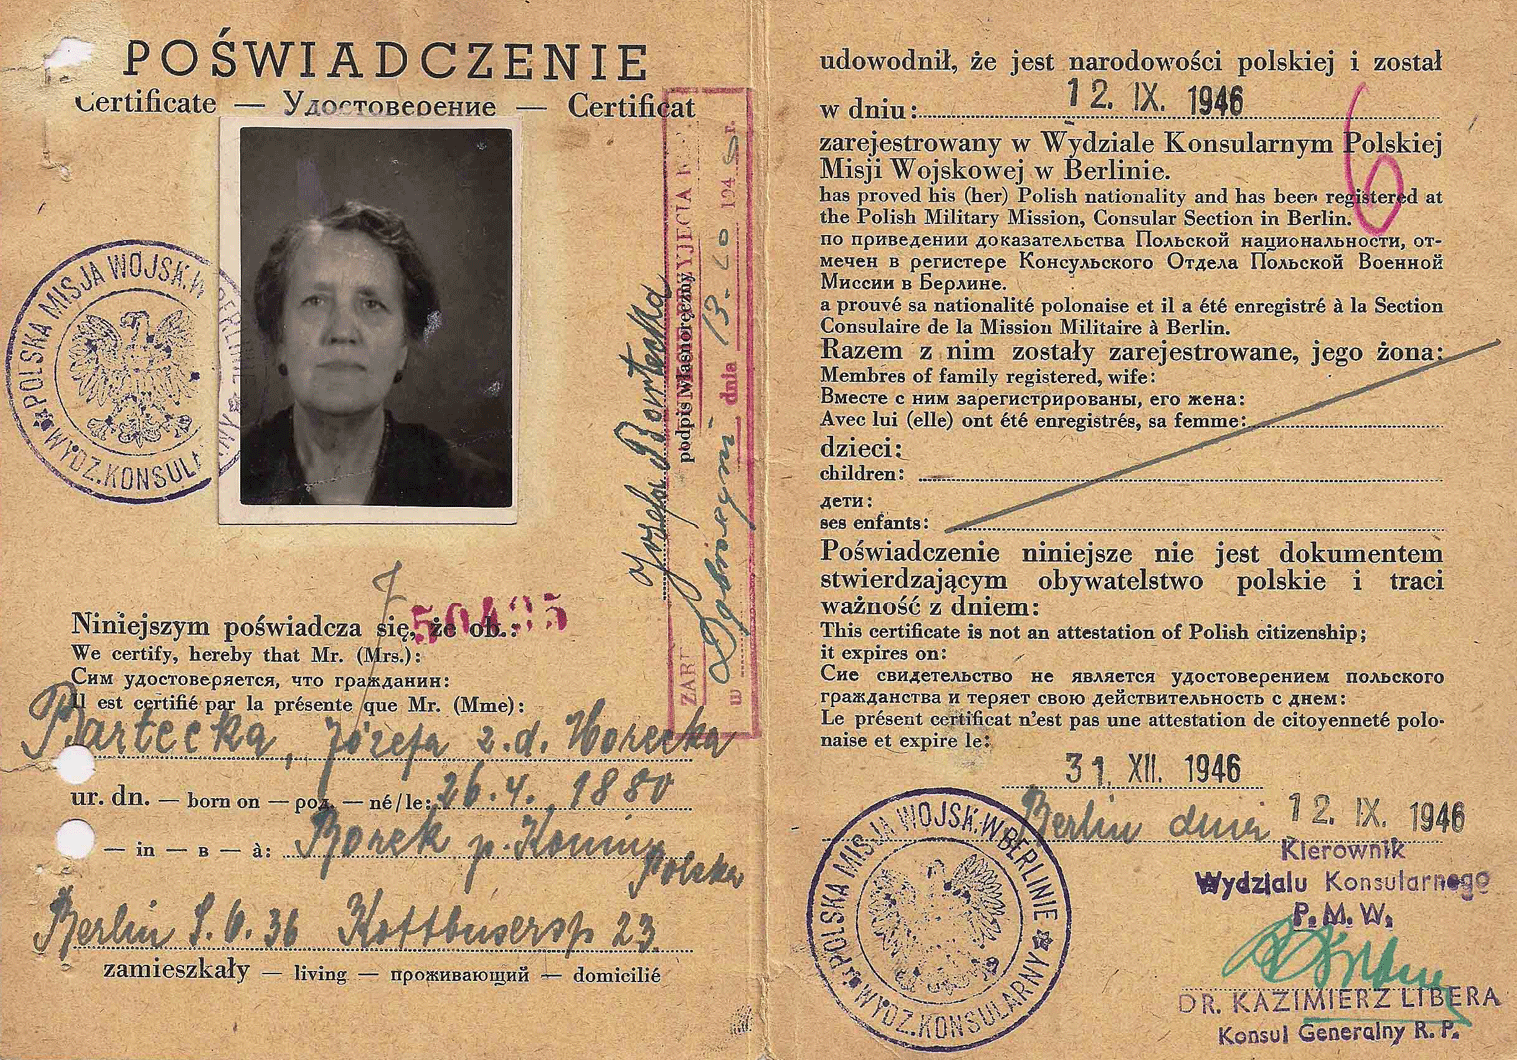 Polish Military Mission to the Allied Control Council in Germany